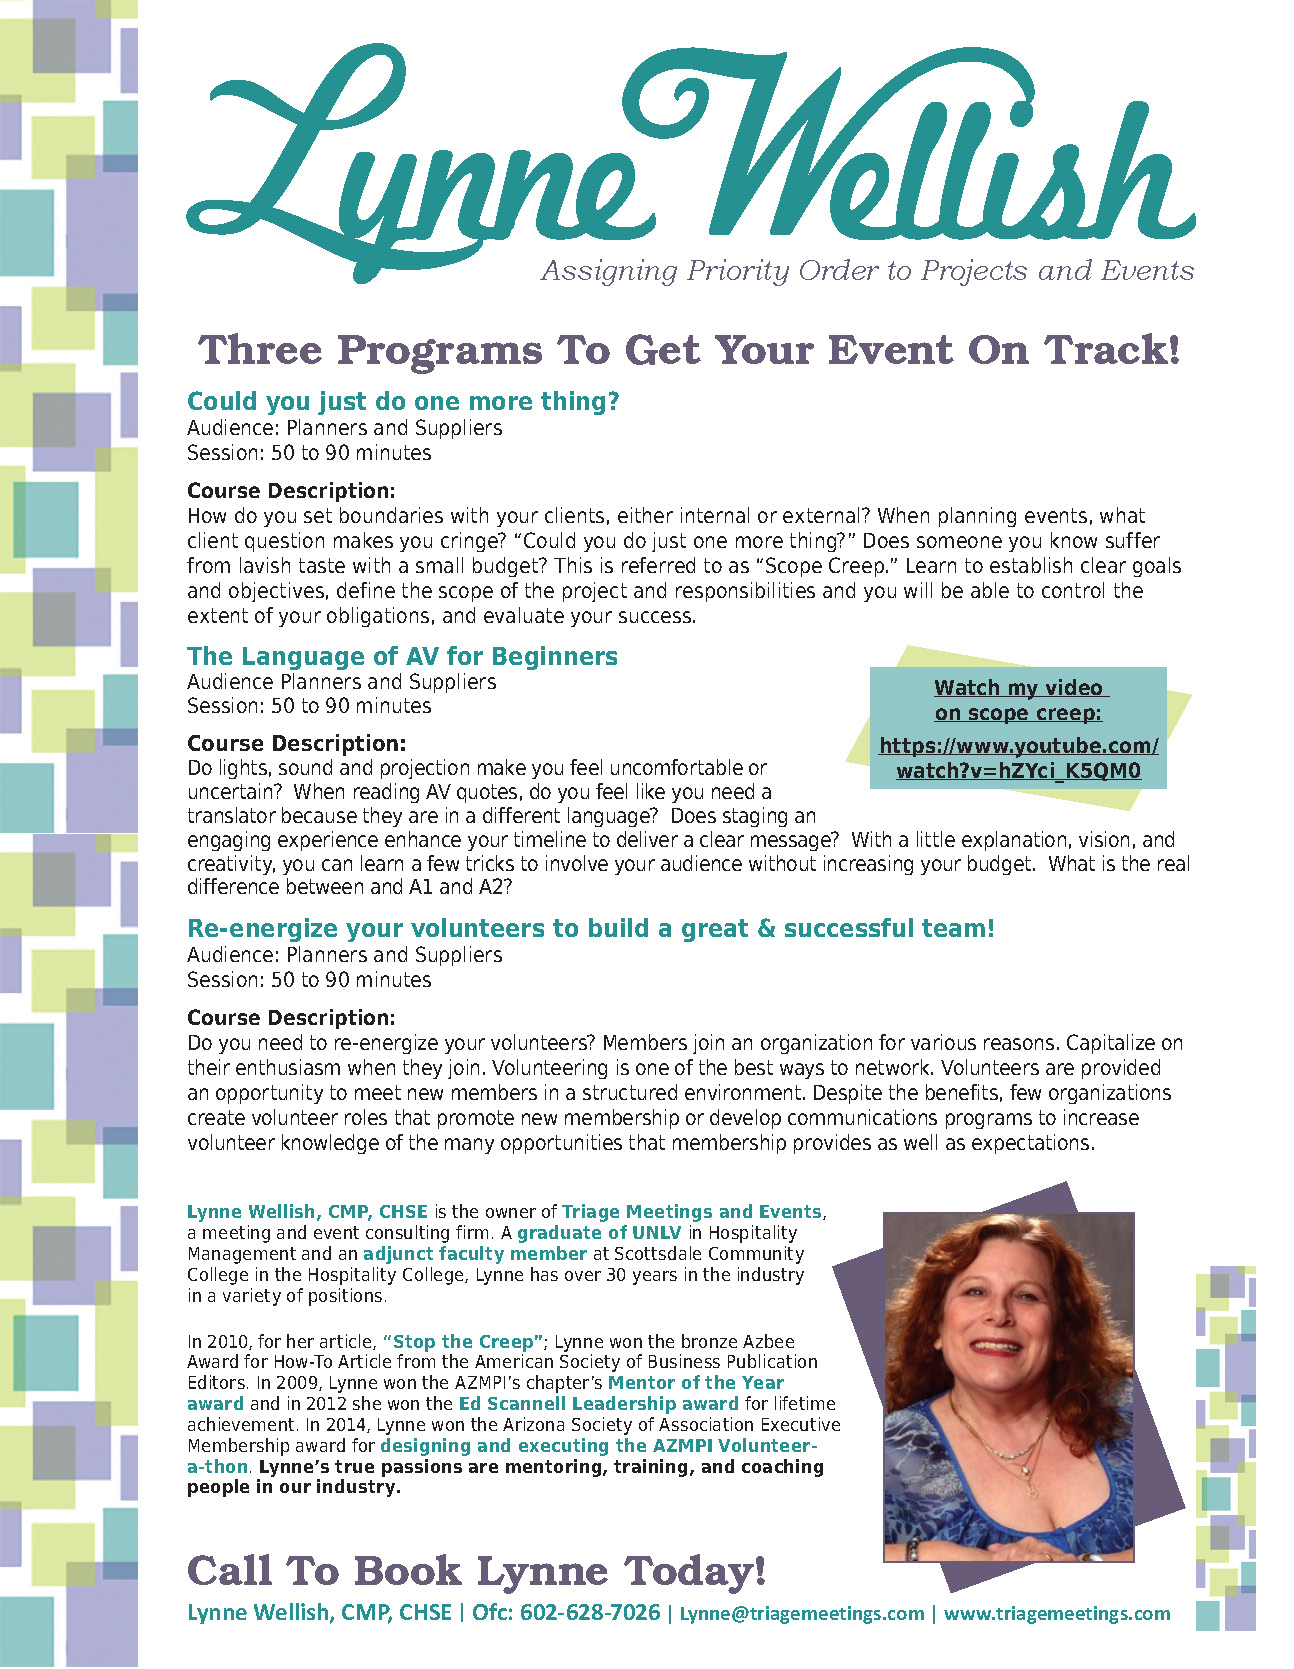 :ynne Wellish, Triage Meeting and Event Consulting | Speaker's One Sheet